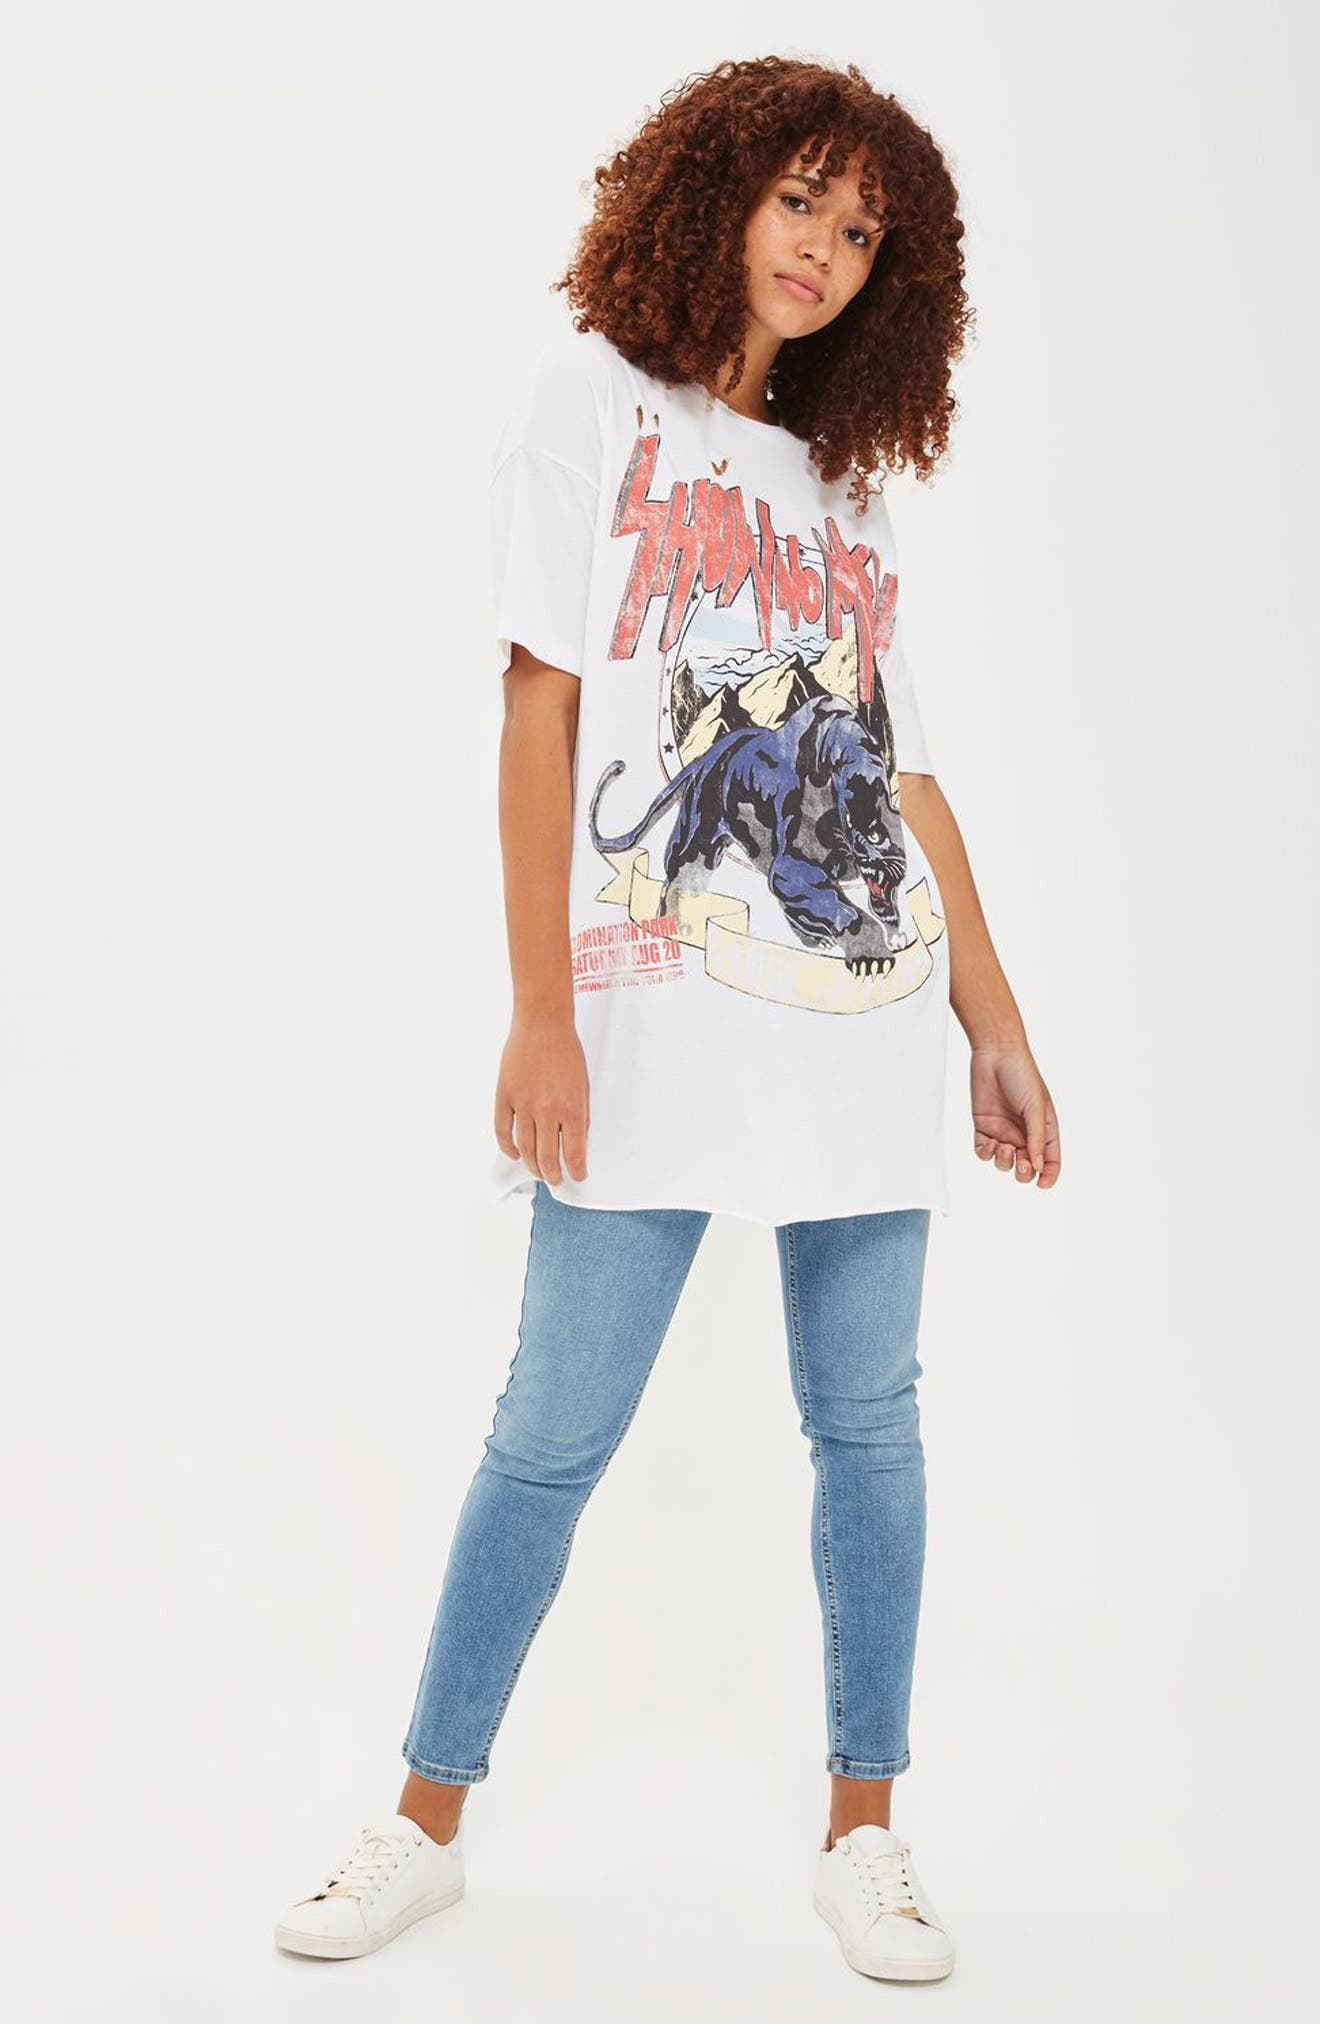 Topshop Tee & Jeans Outfit with Accessories